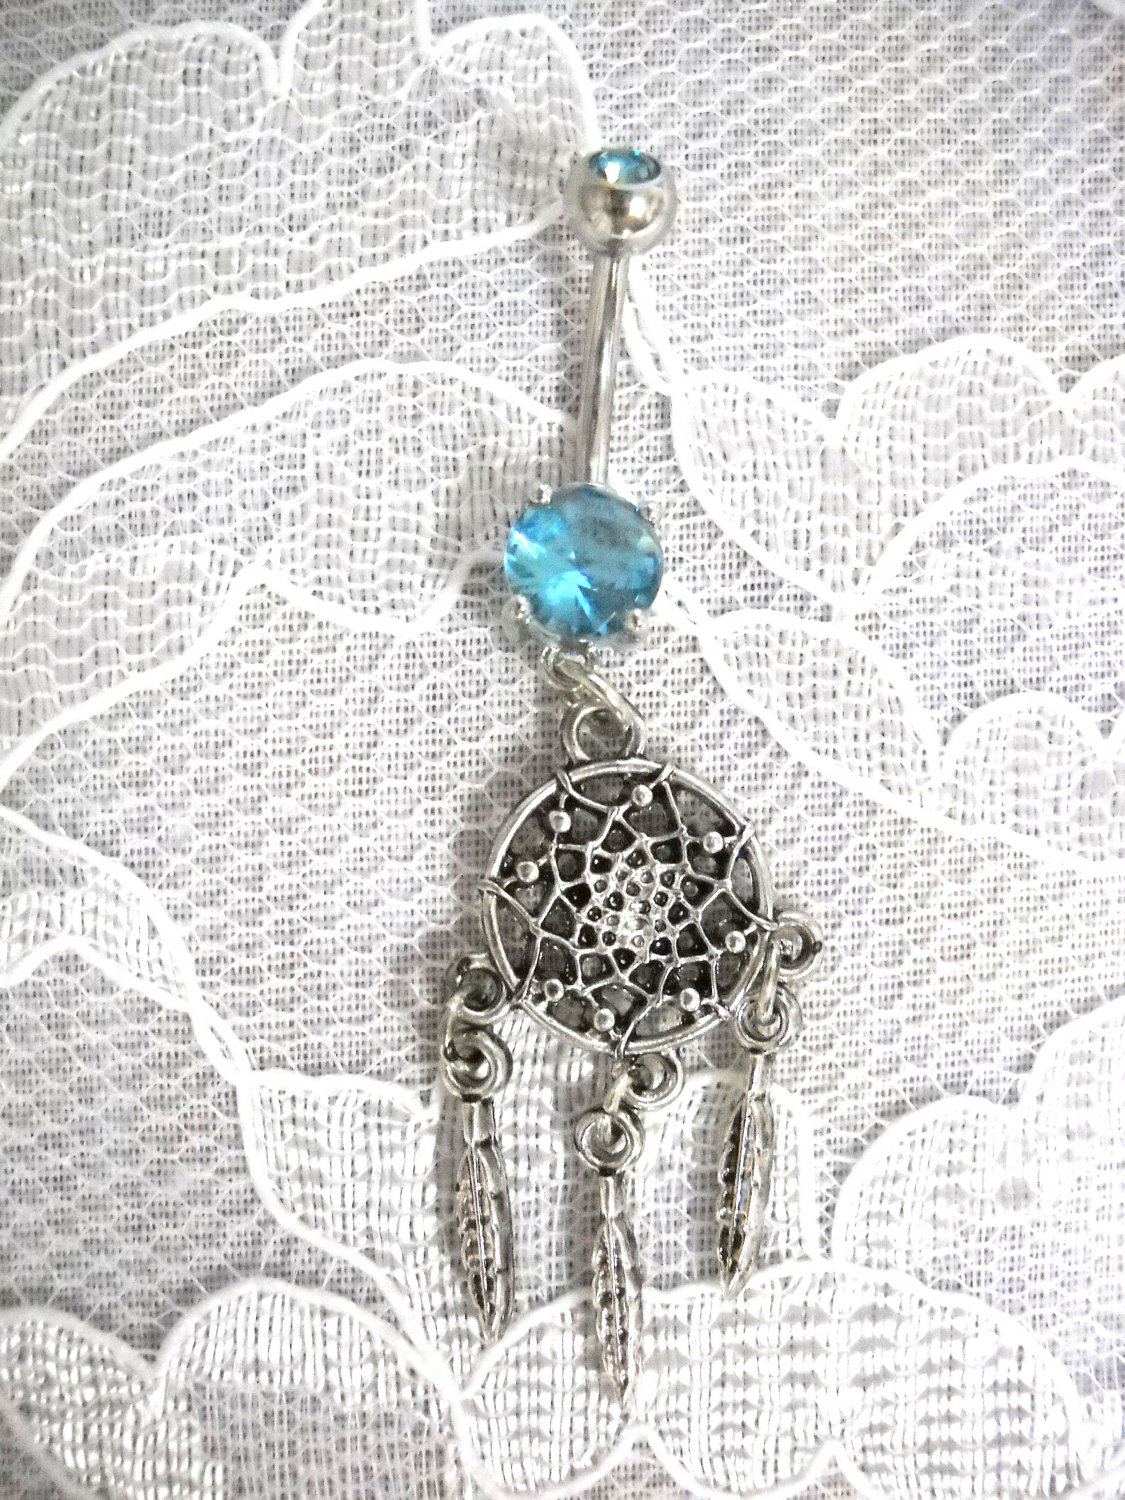 NEW NATIVE DREAM SPIRIT WEB  3 FEATHERS ON BABY BLUE CZ 14g NAVEL RING